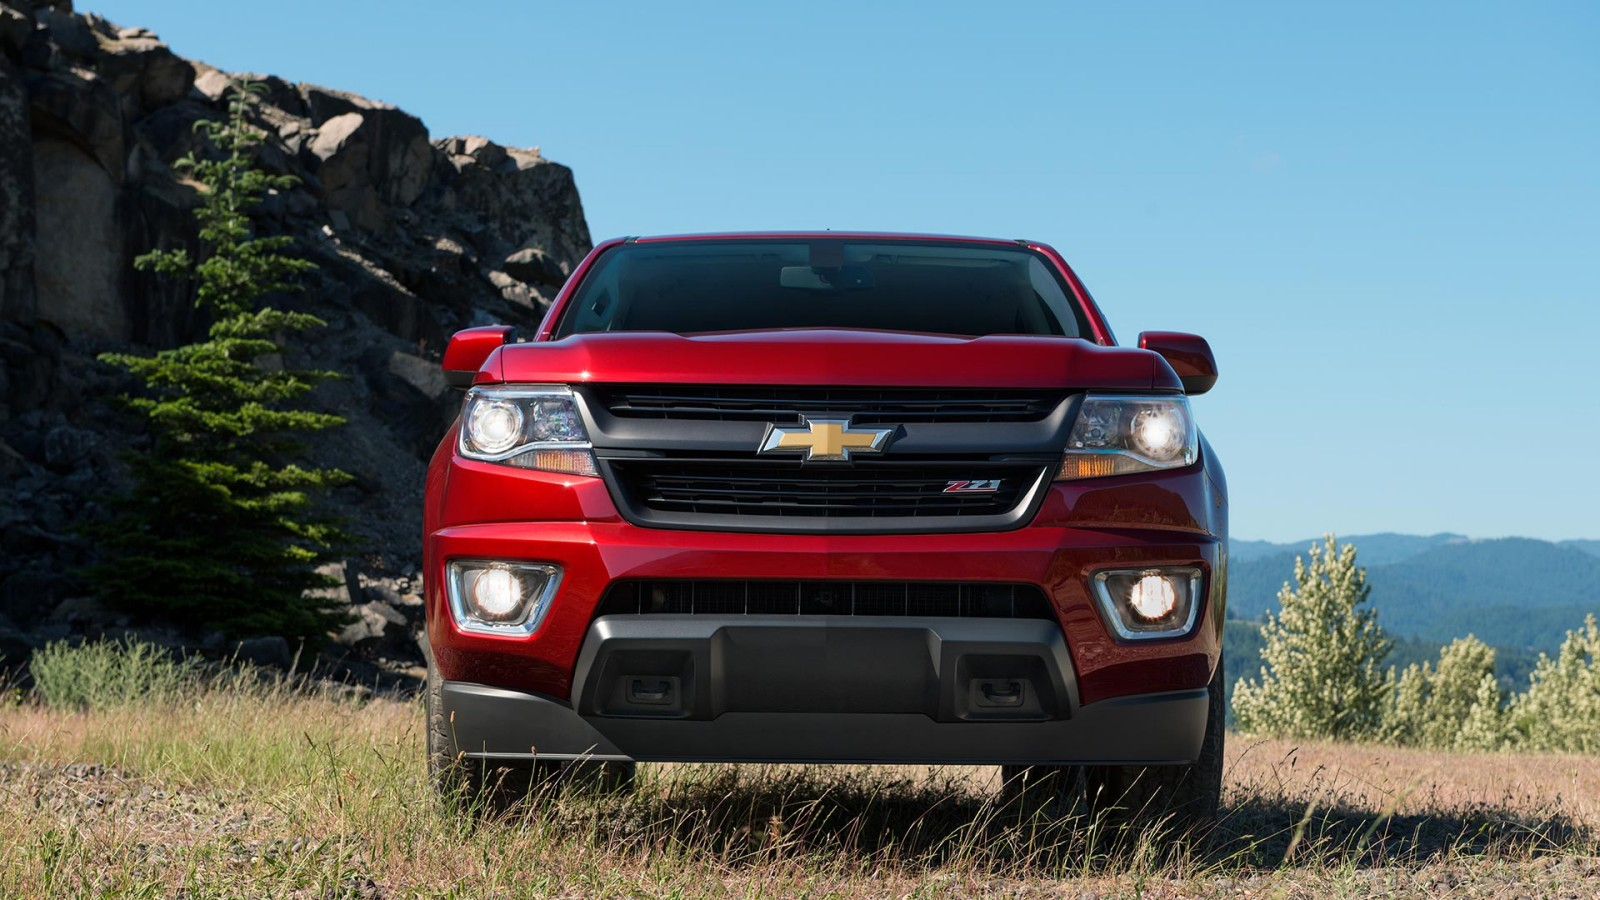 Chevrolet Colorado Vs 2016 Tahoe Chevy Fuel Filter Replacement The Is A Small Midsize Pickup Truck Thats Offered With Two Different Cabin Setups Basic Extended Cab Version Provides Seating